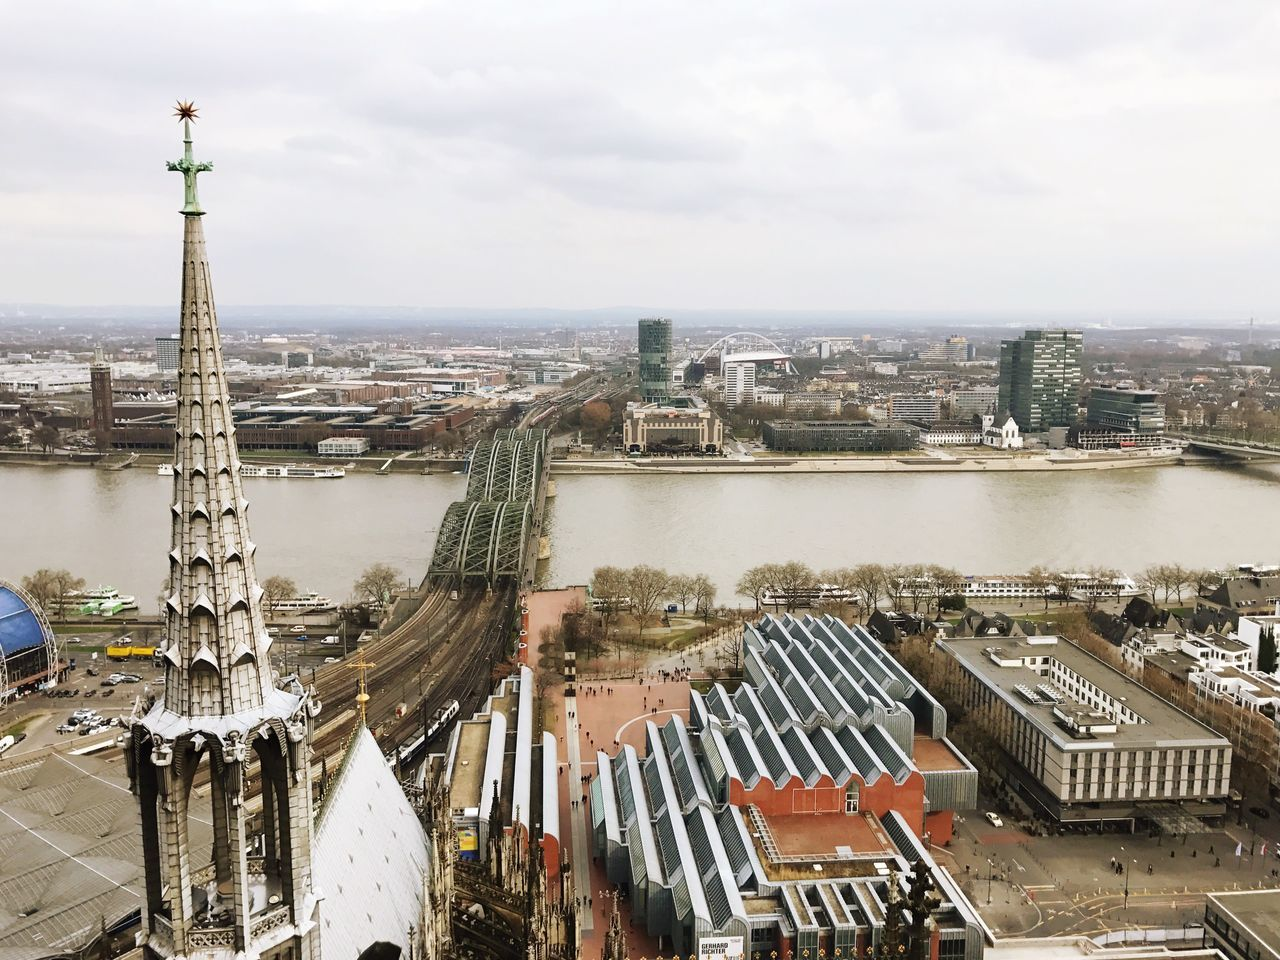 Cologne Köln Architecture Built Structure Building Exterior City Cityscape High Angle View Sky Residential Building Outdoors Day Travel Destinations Water Tower Tourism River No People Sculpture Statue Tree Scenic Lookout